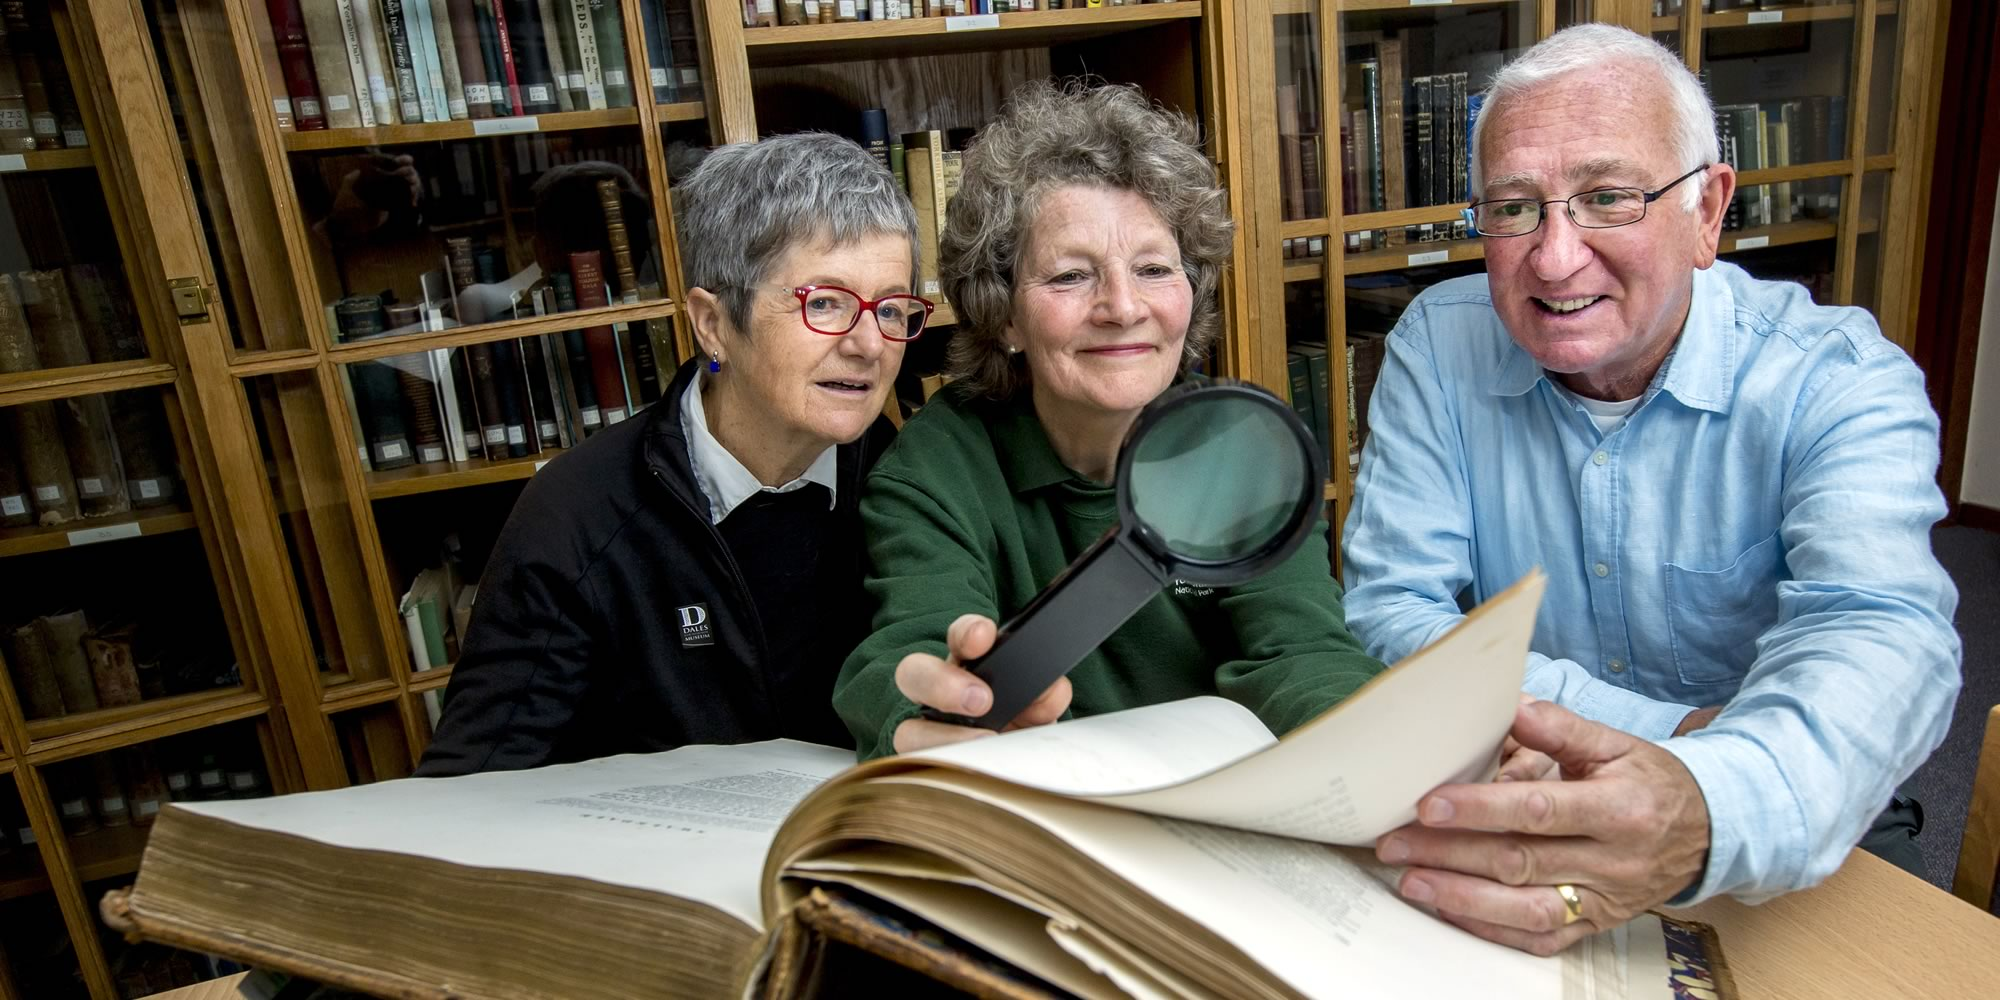 People in a library with old archive books.